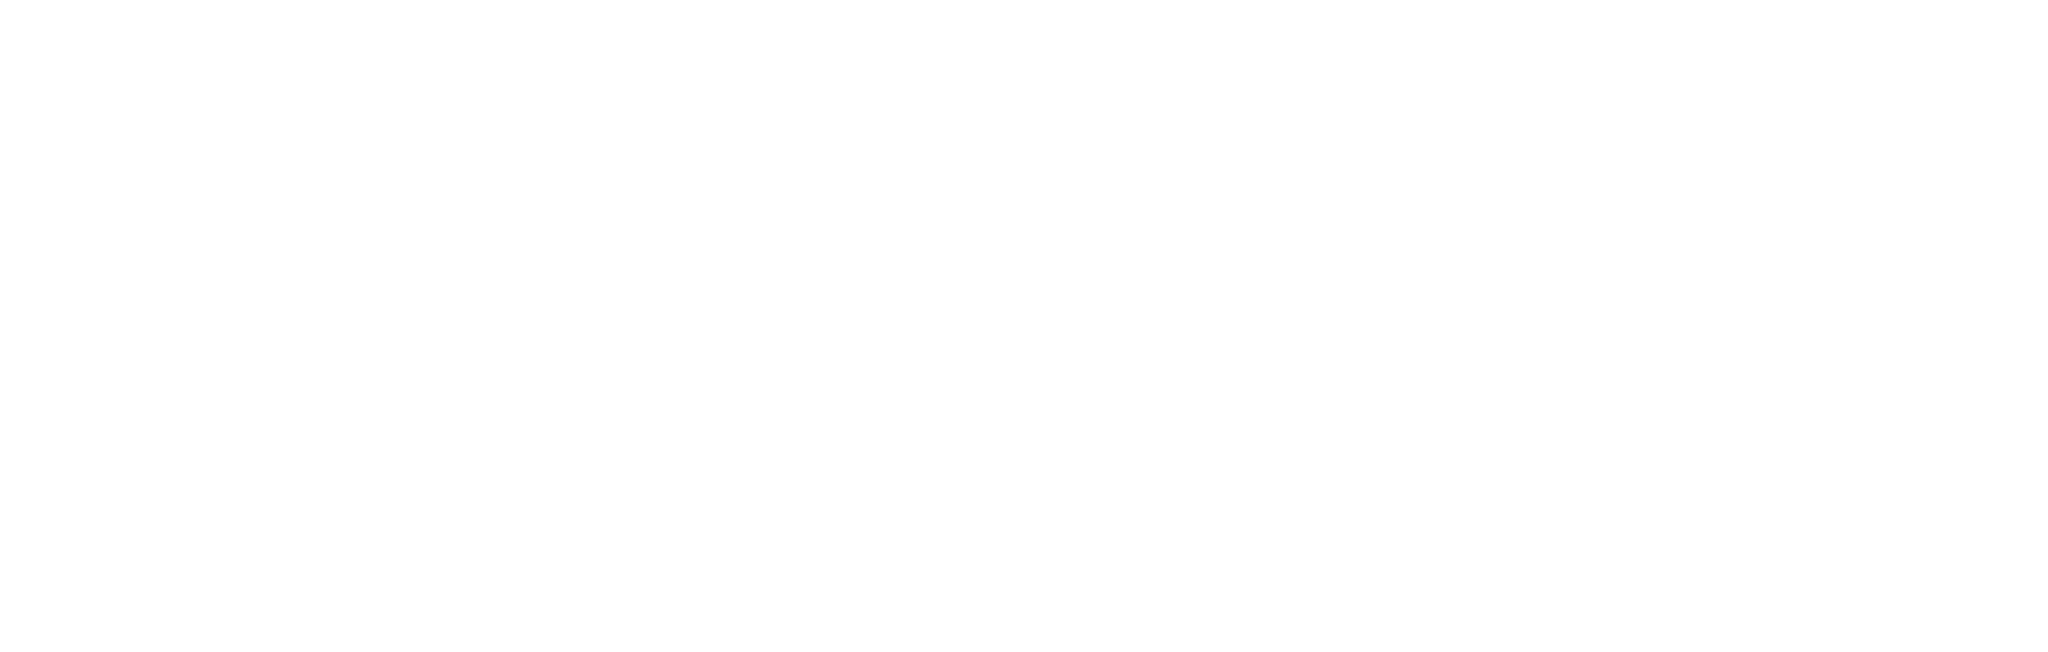 OutMatch Insights: Local! - OutMatch